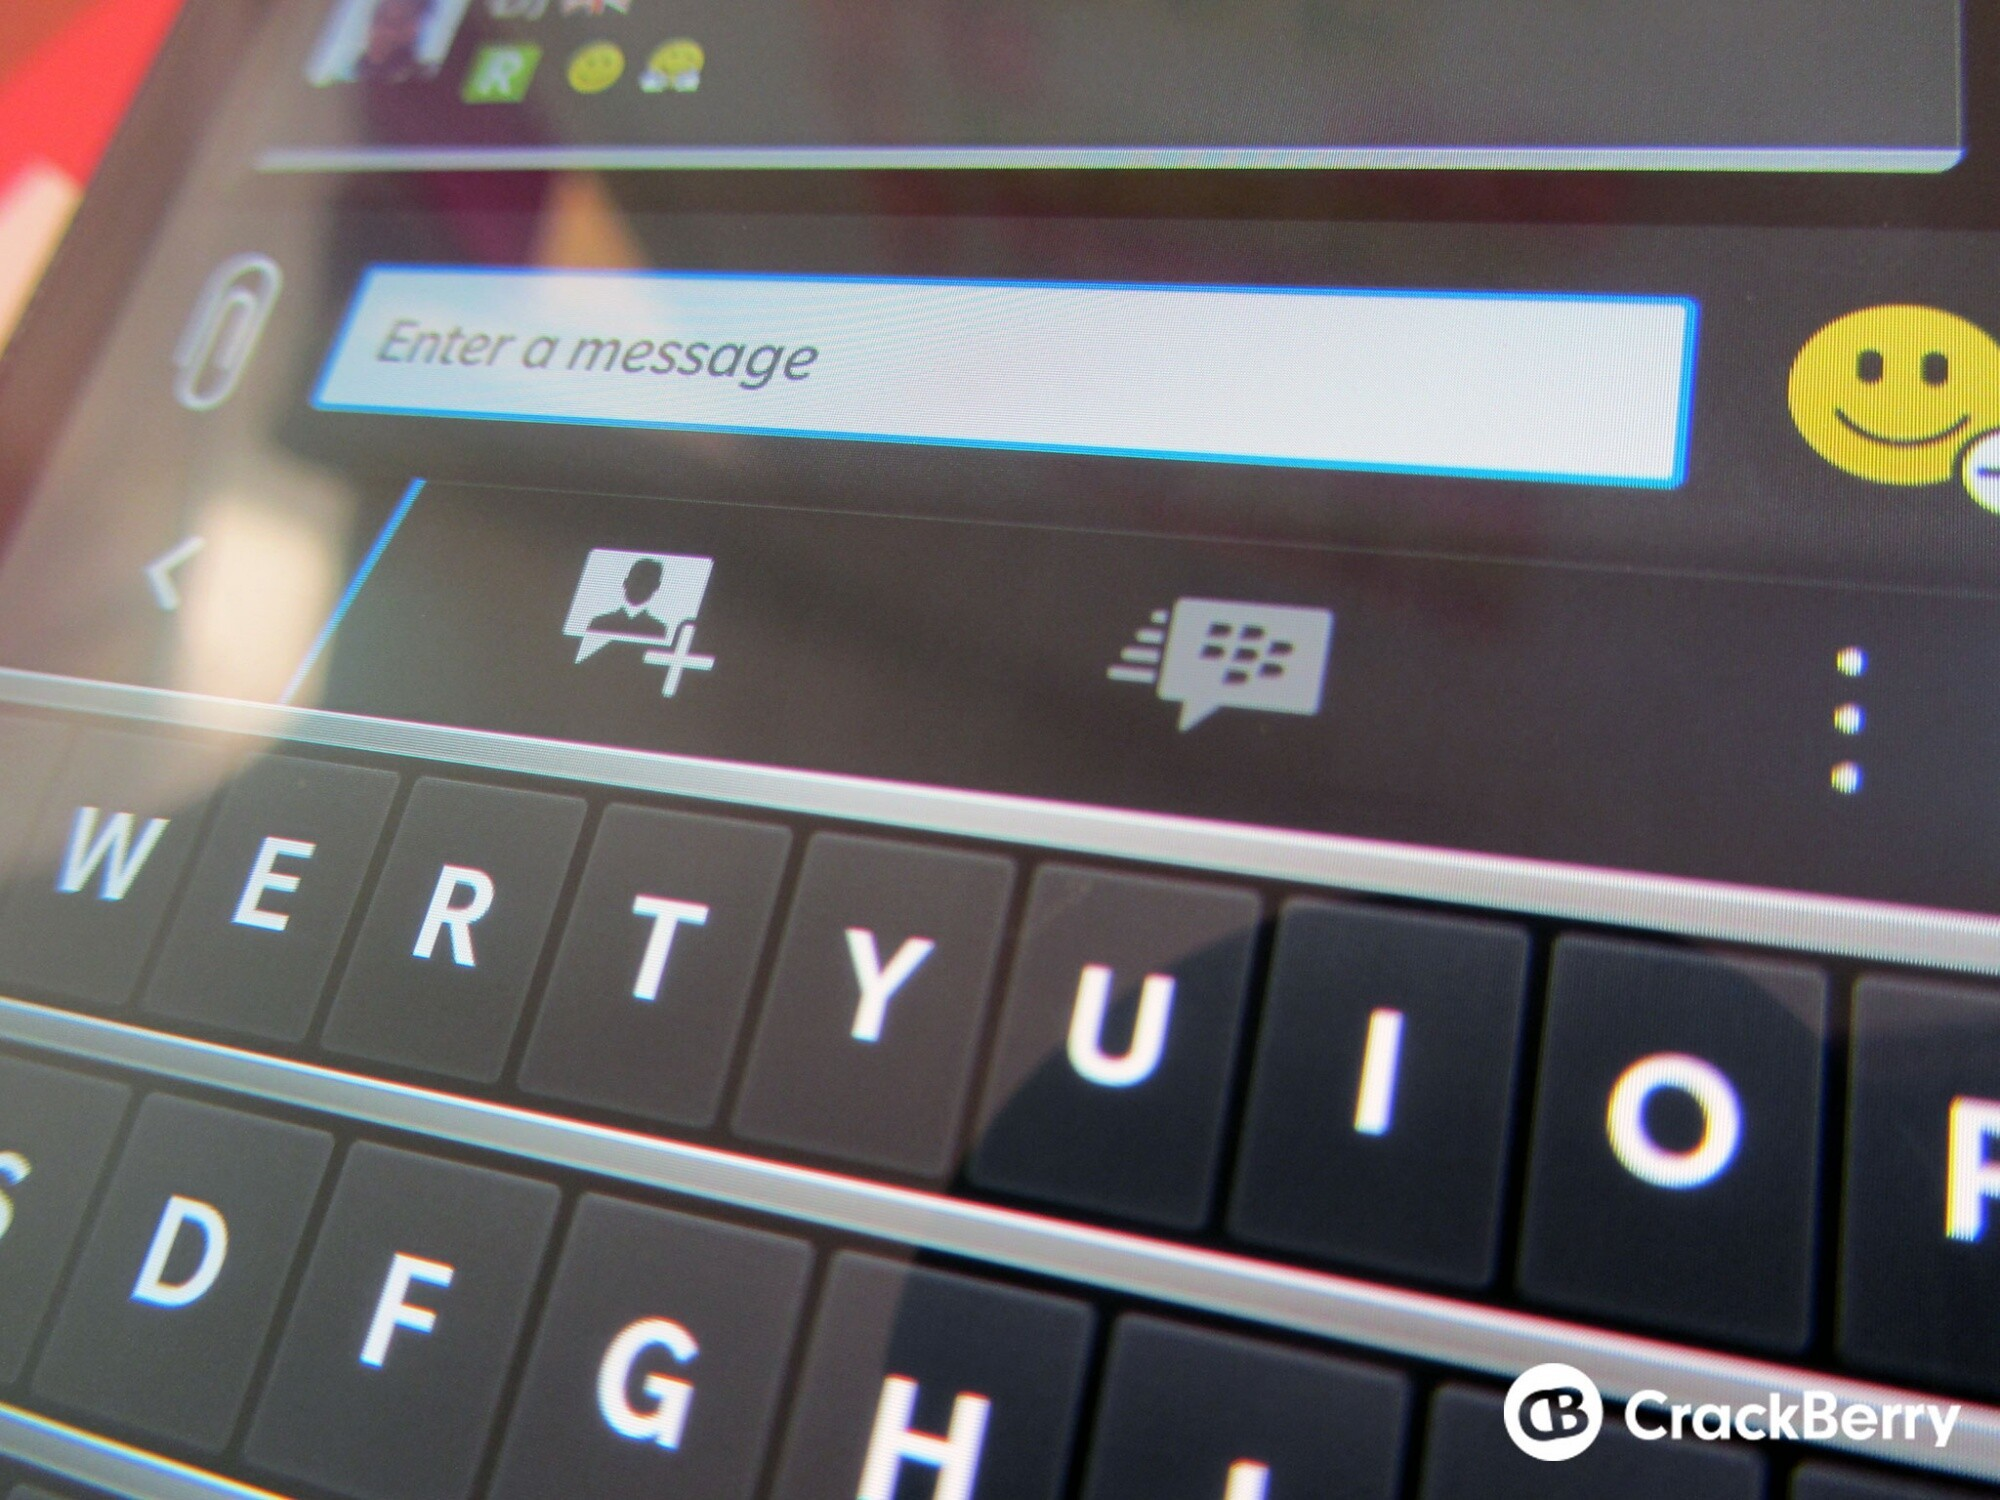 How to remove the action bar in the latest BBM update